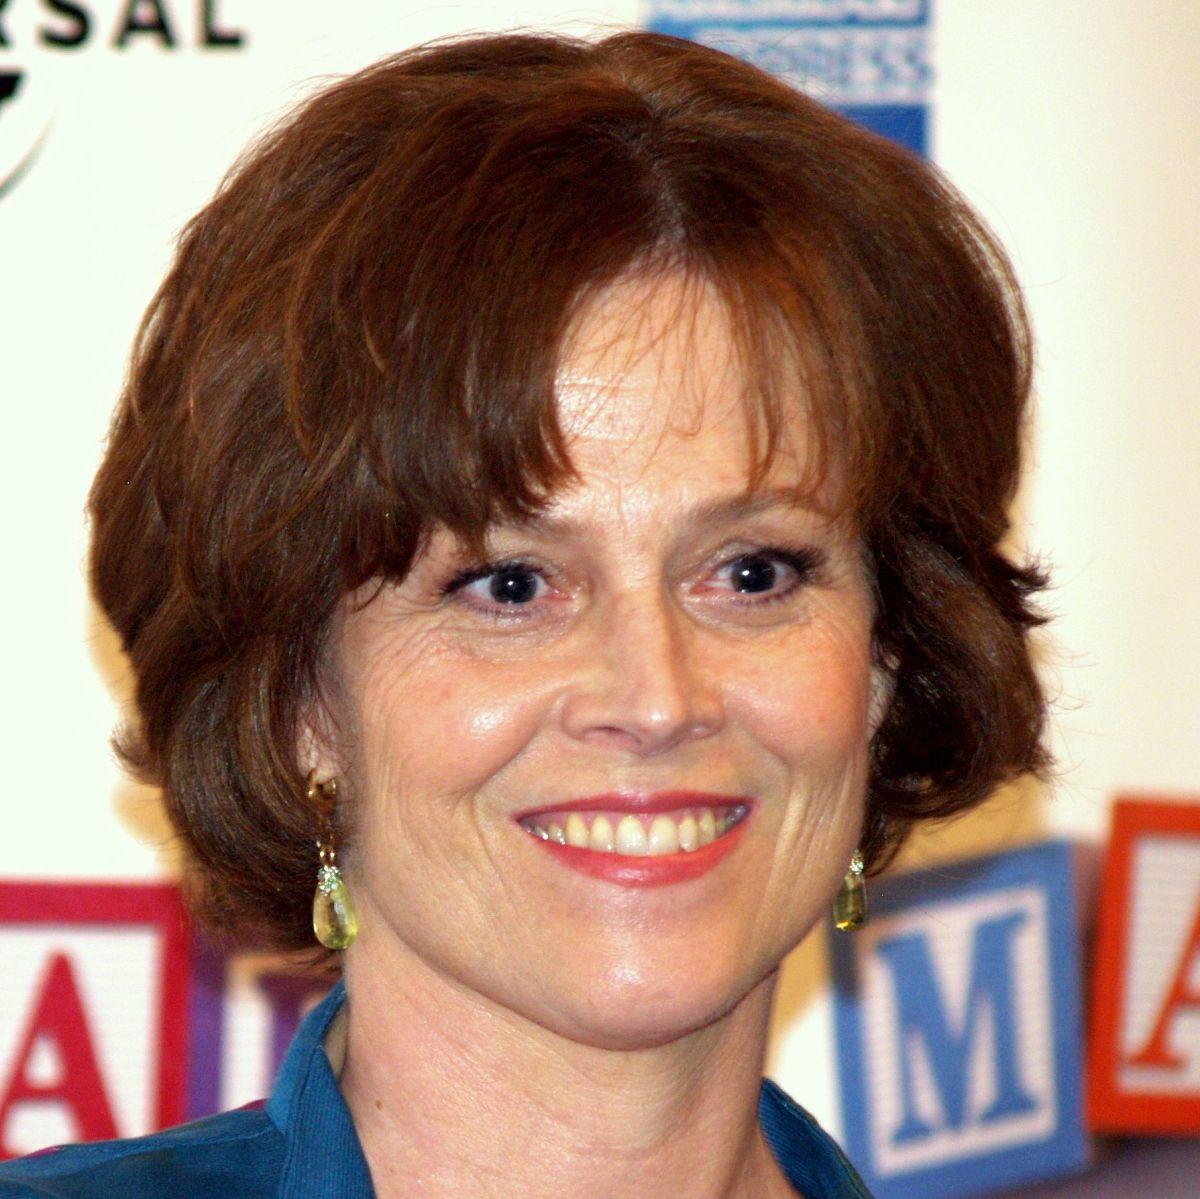 Sigourney Weaver, married since 1984